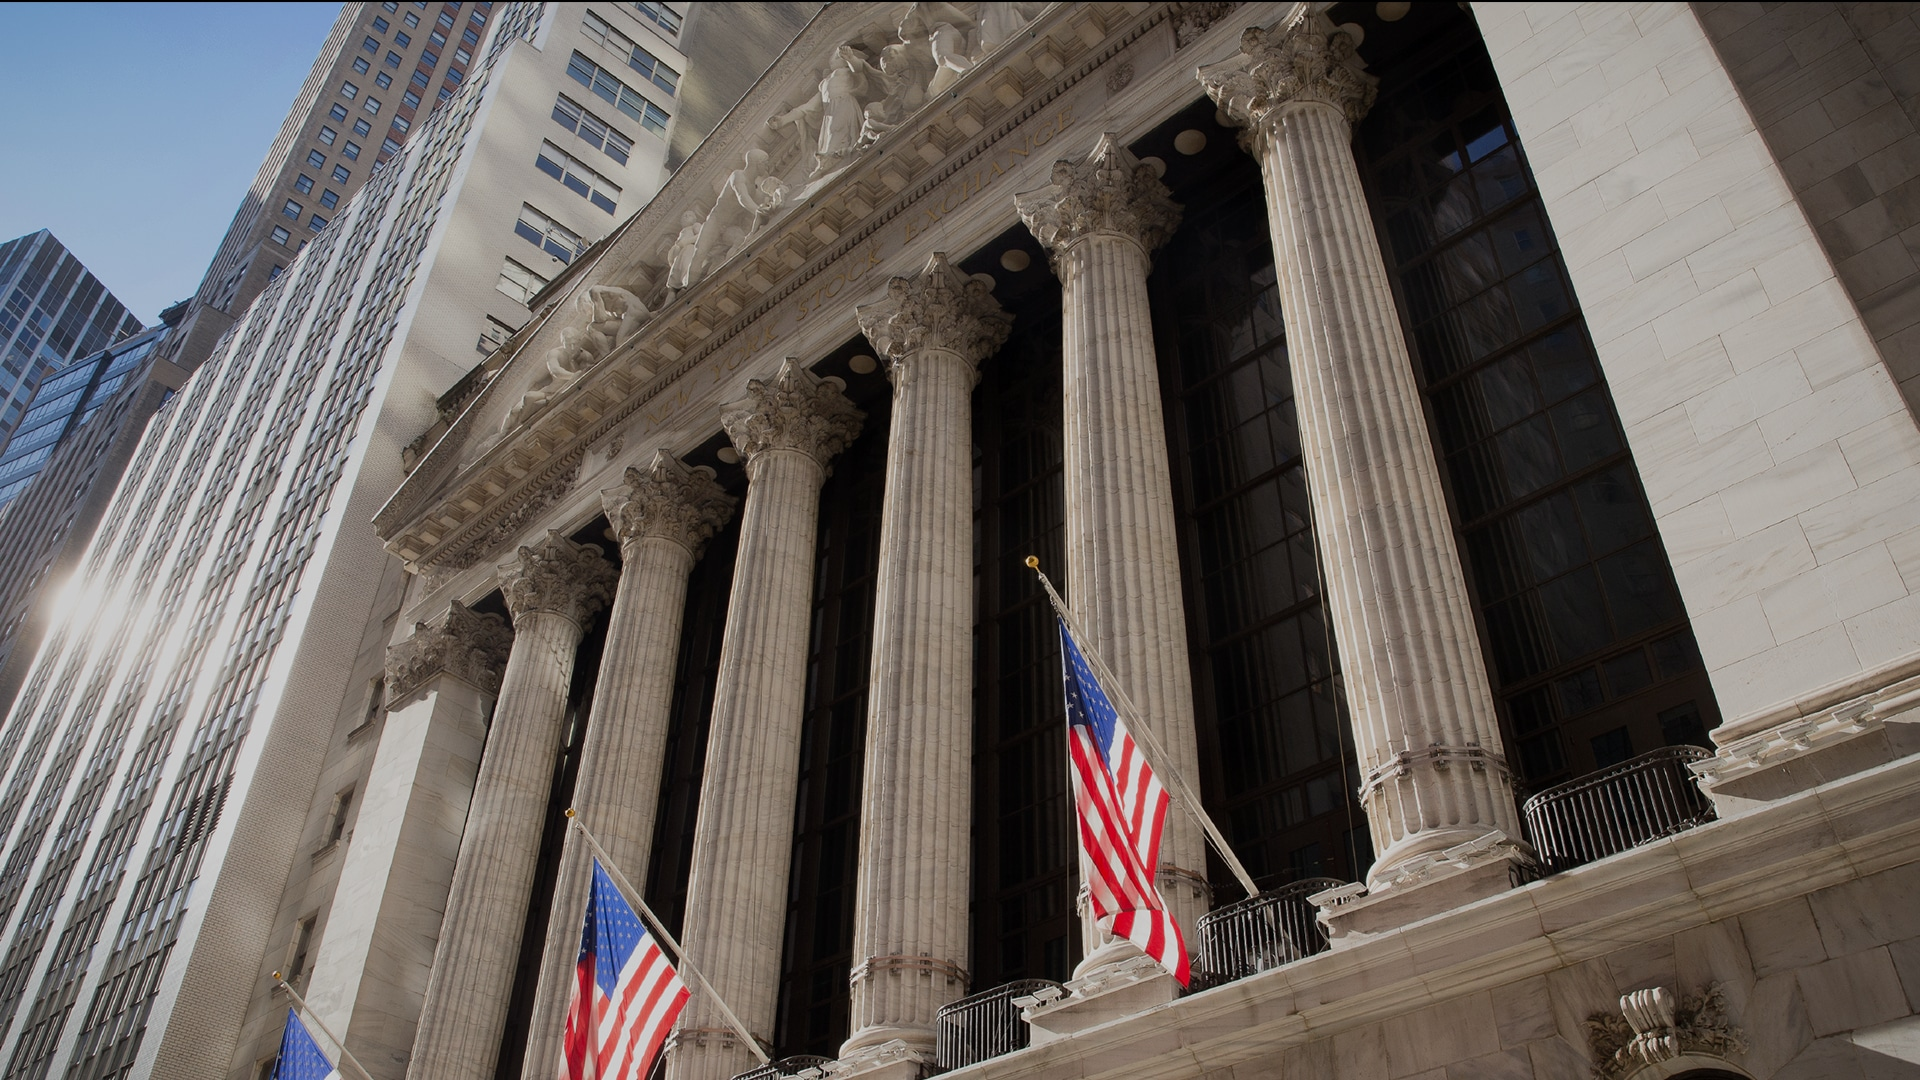 PMI's CEO to ring closing bell of NYSE stock exchange for company's 10th anniversary